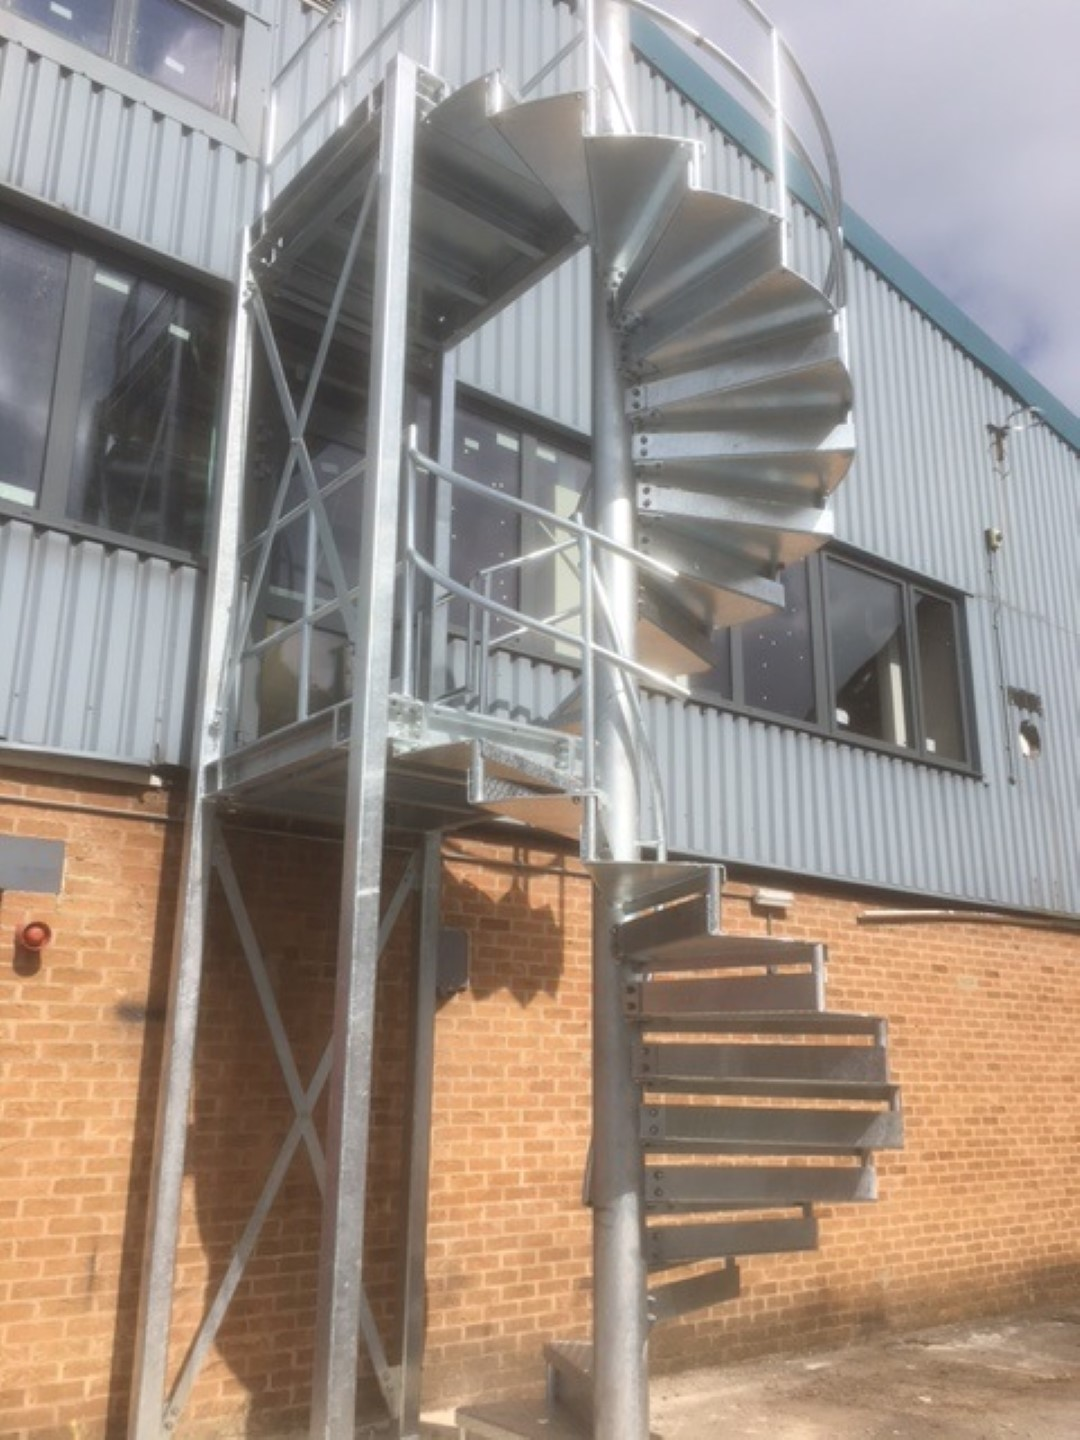 Steel Fabricators Of Balconies Staircases Spiral